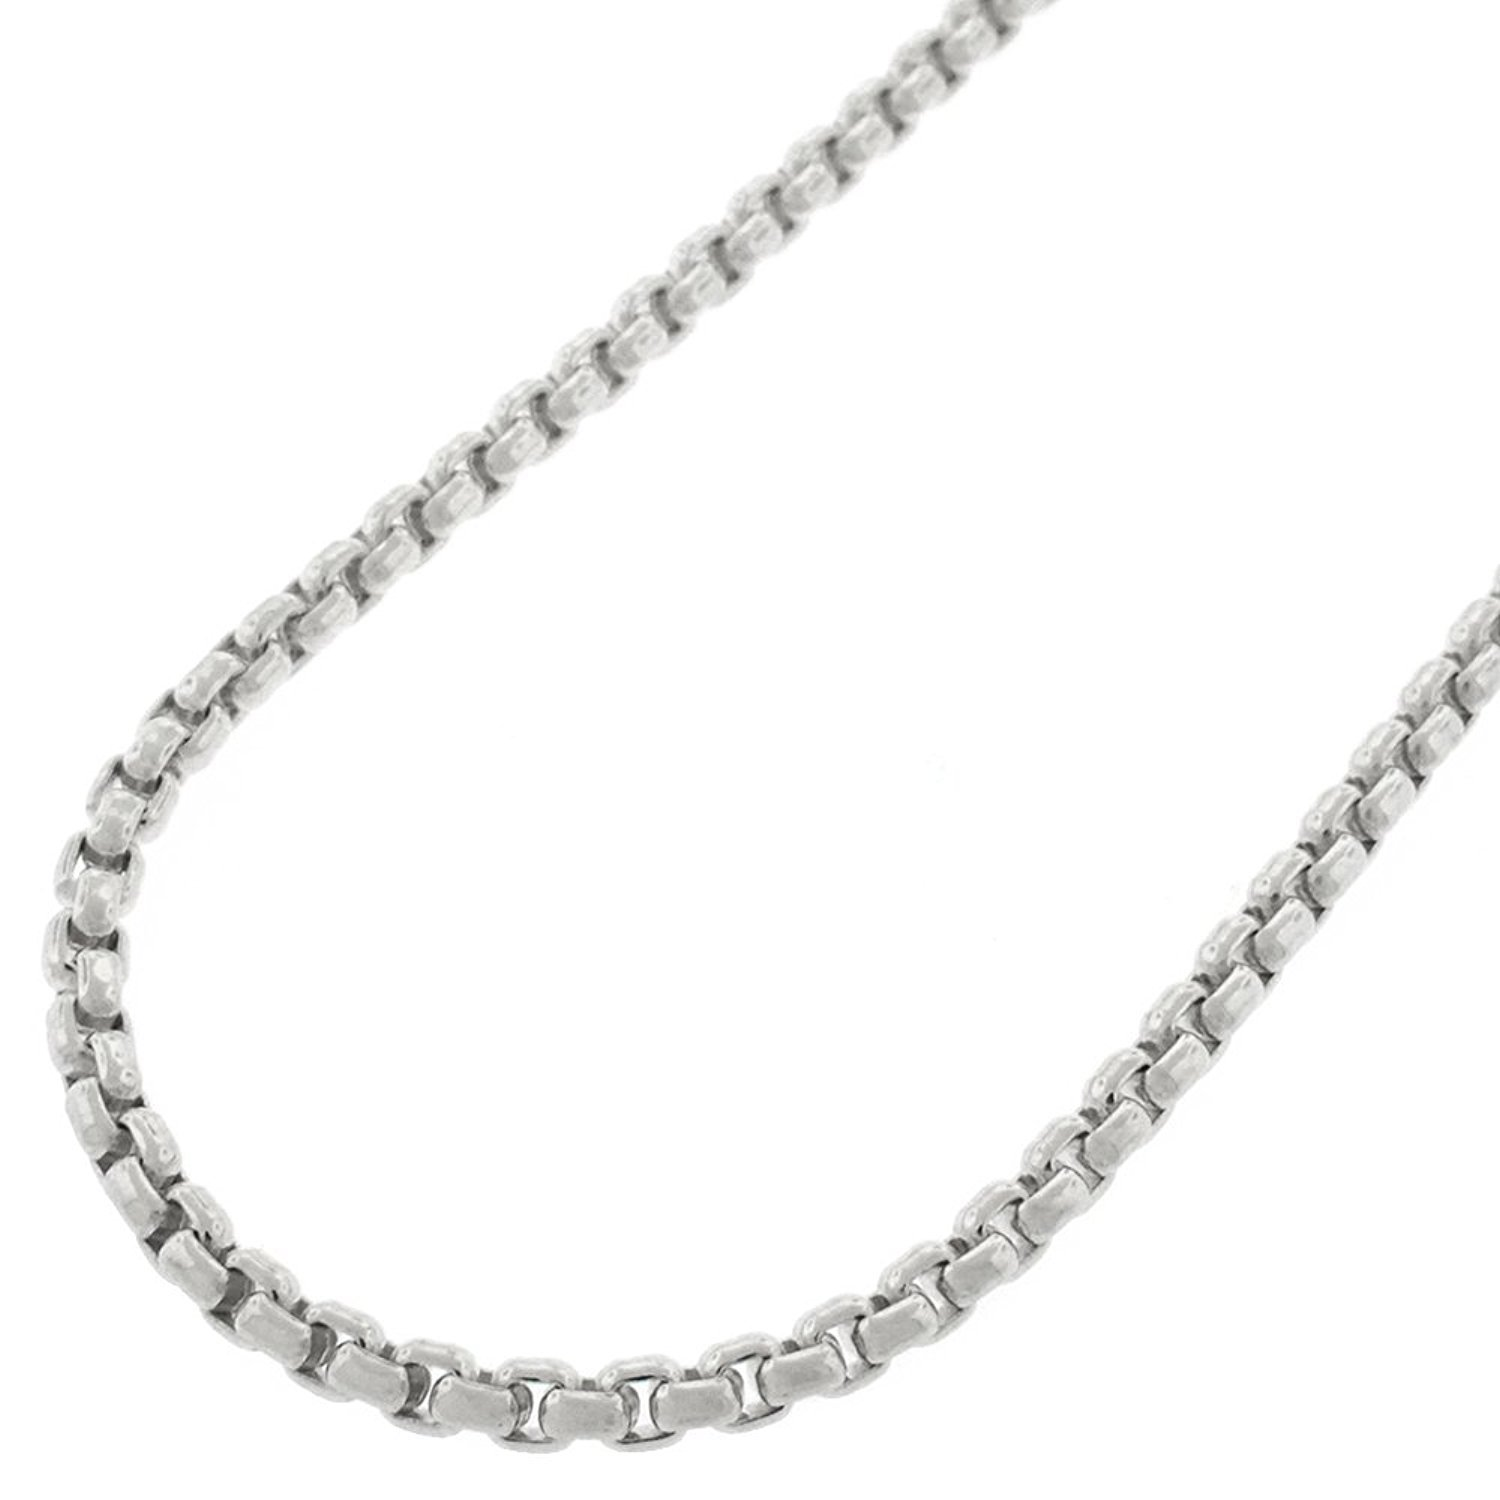 Sterling Silver Italian 2.5mm Round Box Link Solid 925 Rhodium Necklace Chain 18'' - 30'' (24)